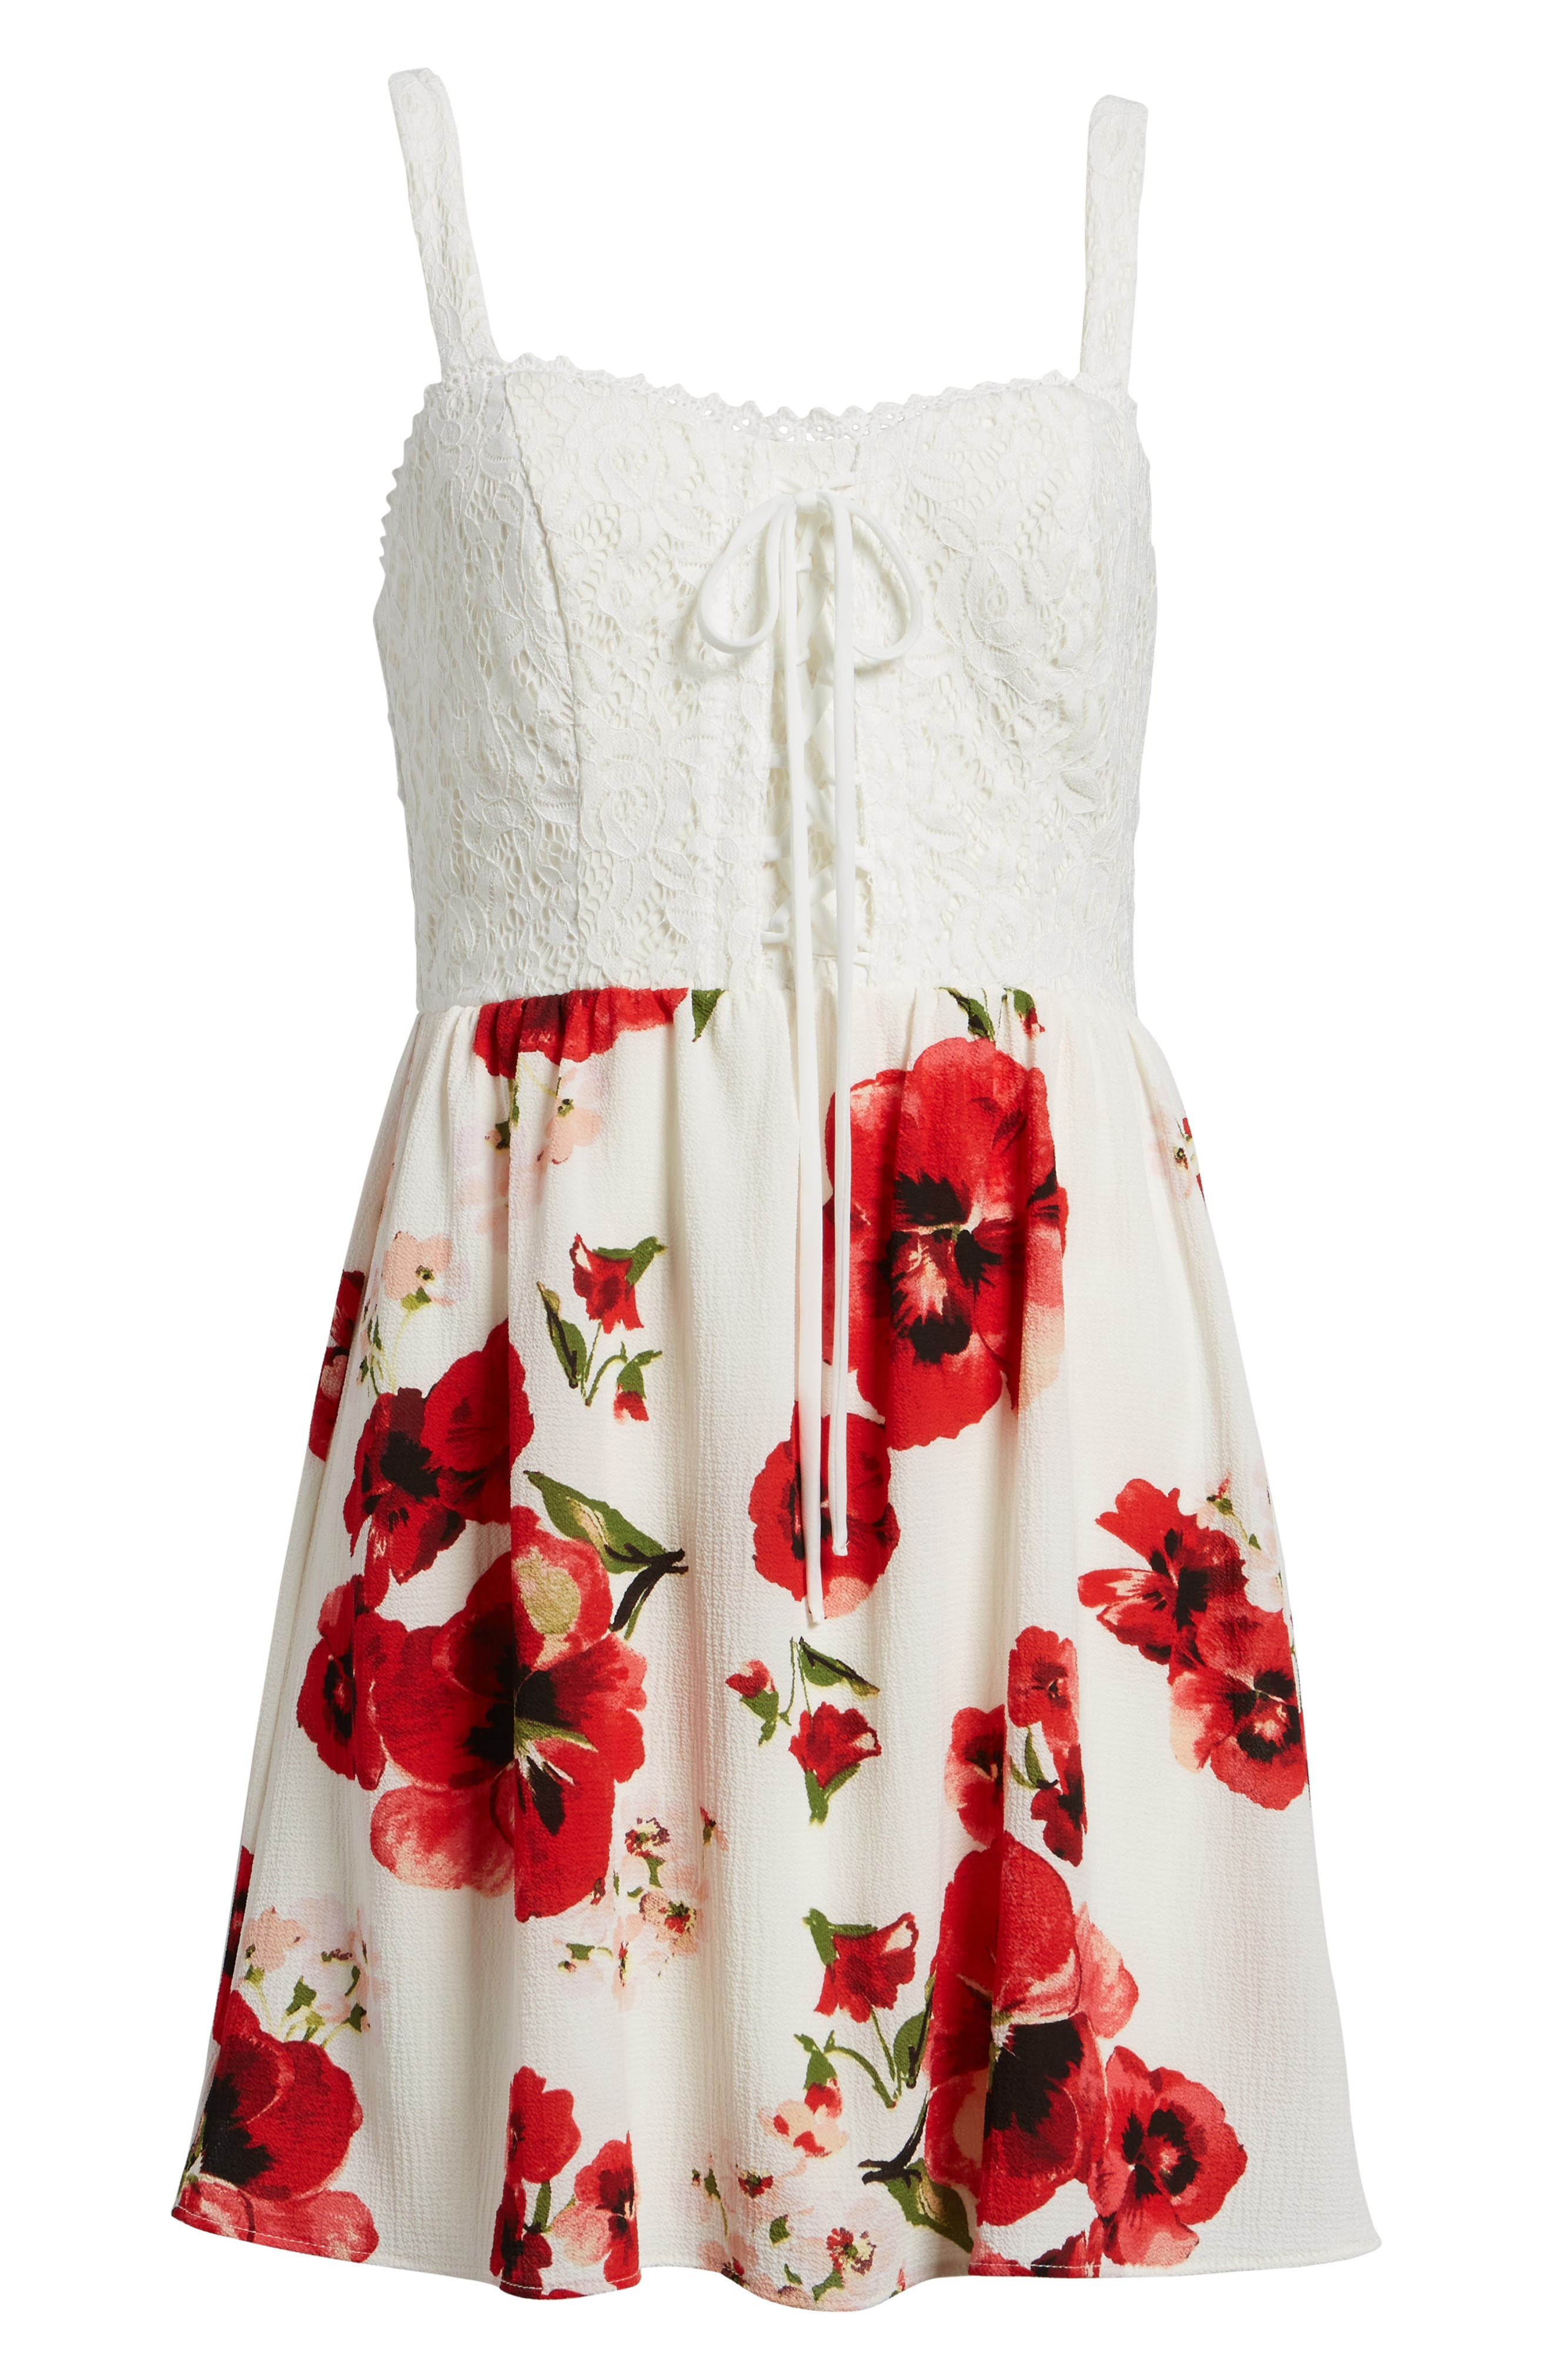 Lace Floral Fit and Flare Dress,                             Alternate thumbnail 6, color,                             Ivory/ Red